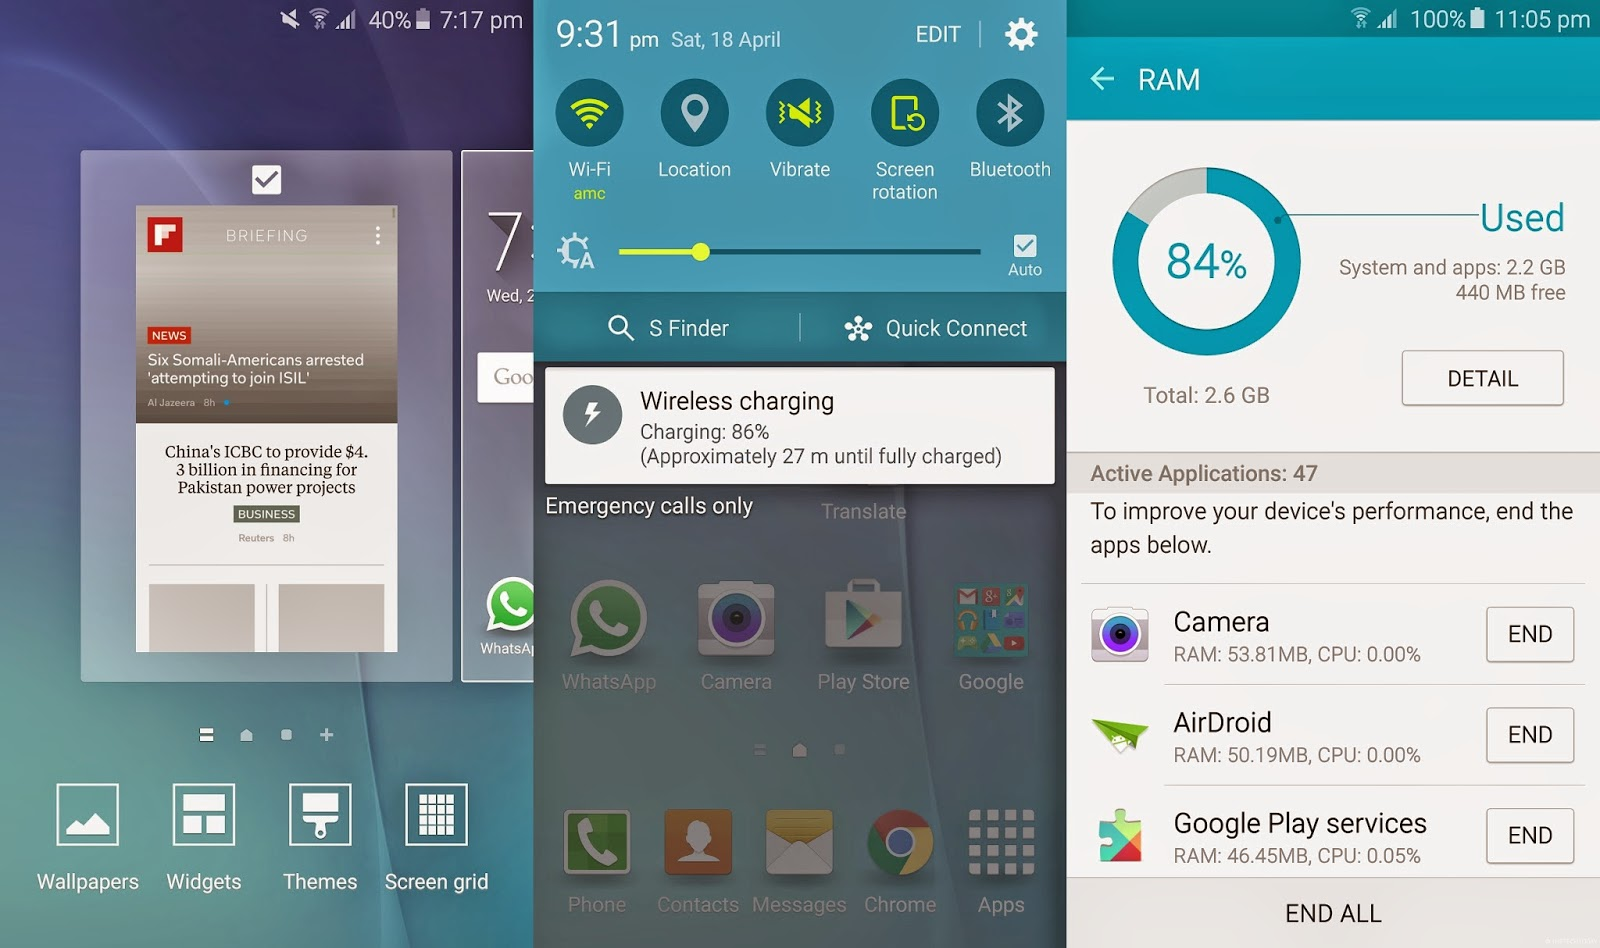 galaxy-s6-gold-touchwiz-android-lollipop-malaysia